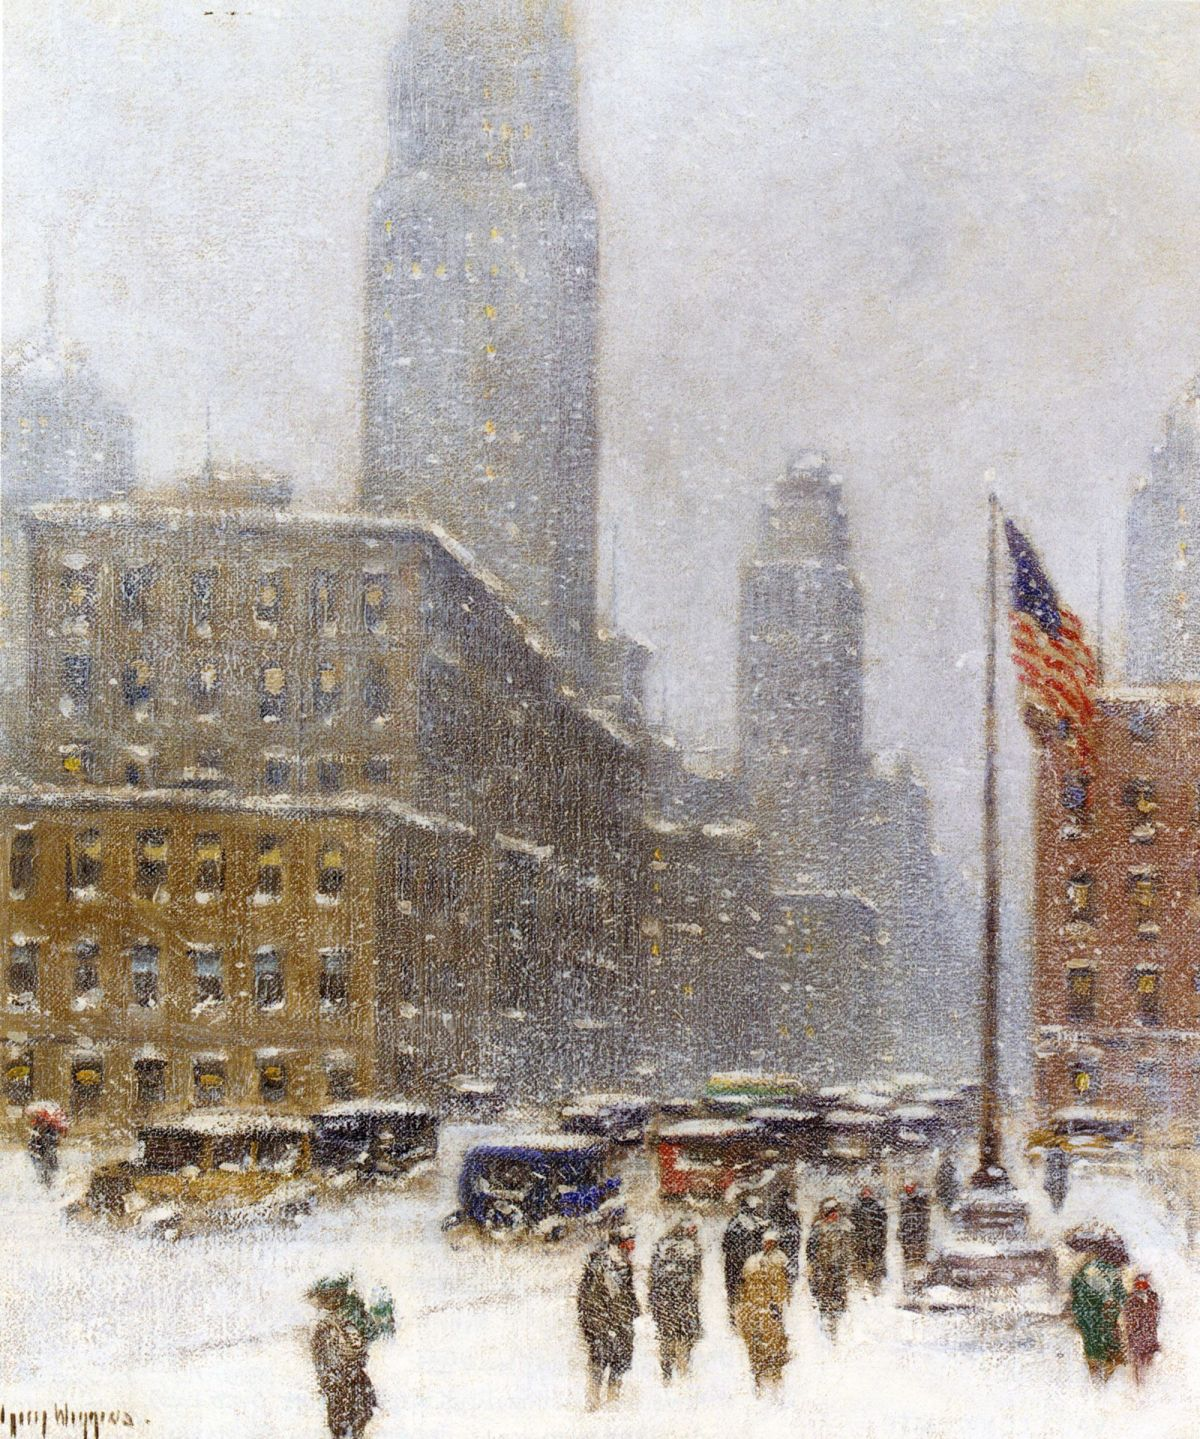 Empire State Building Winter by Guy Carleton Wiggins